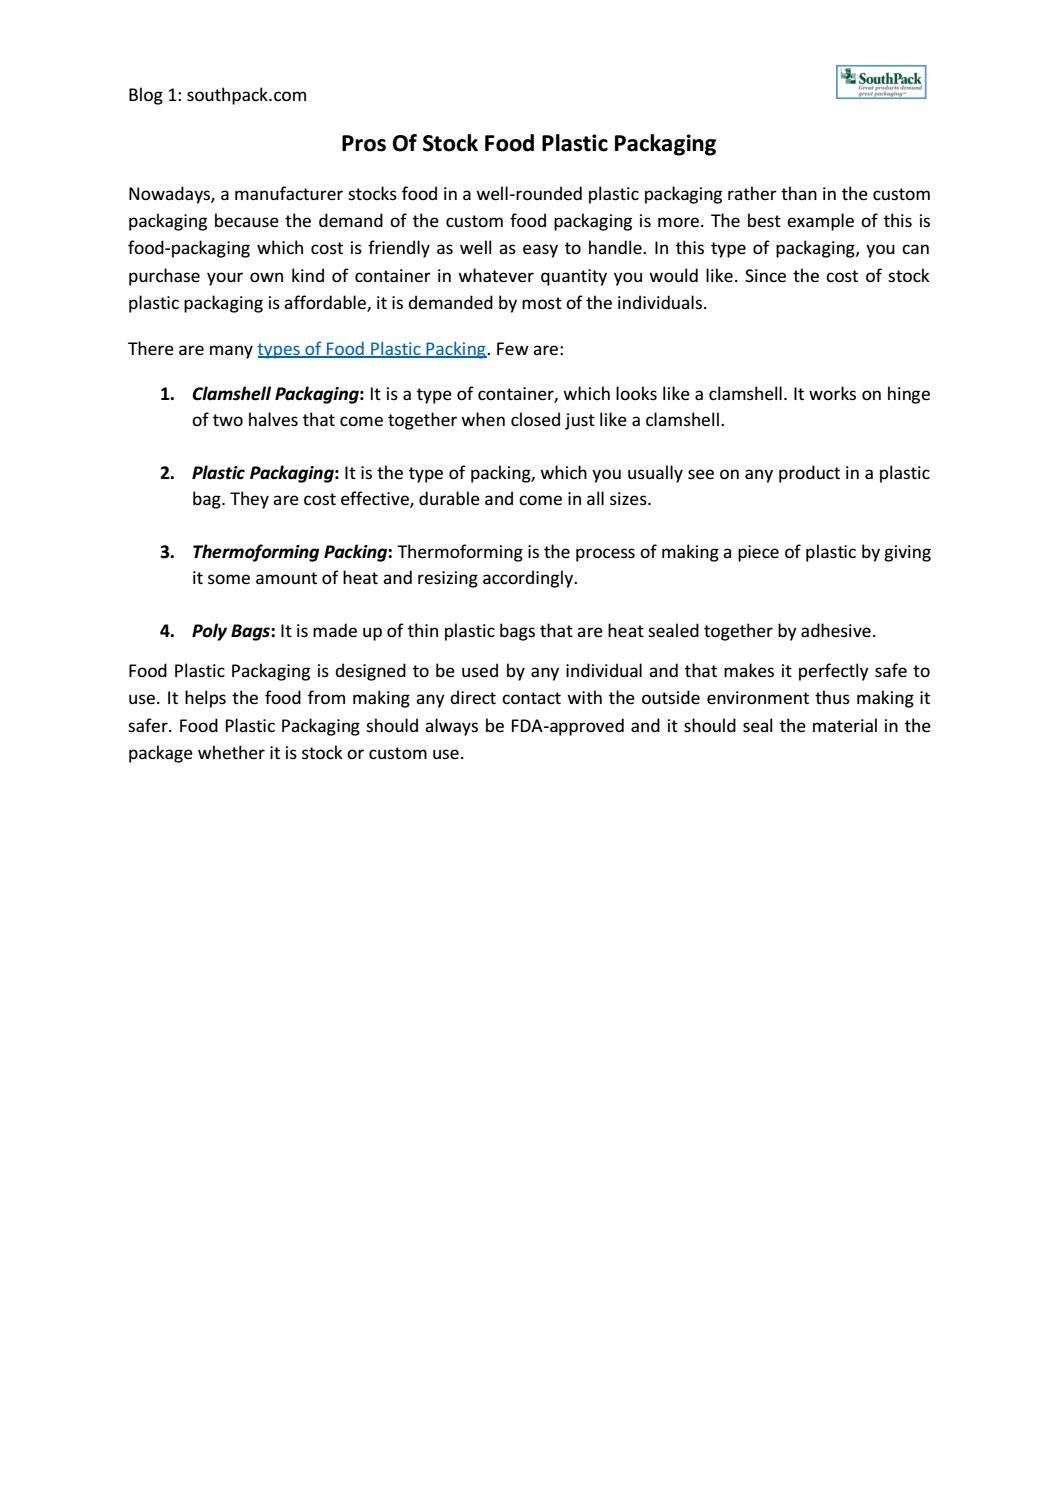 Pros of stock food plastic packaging by SouthPack, LLC - issuu